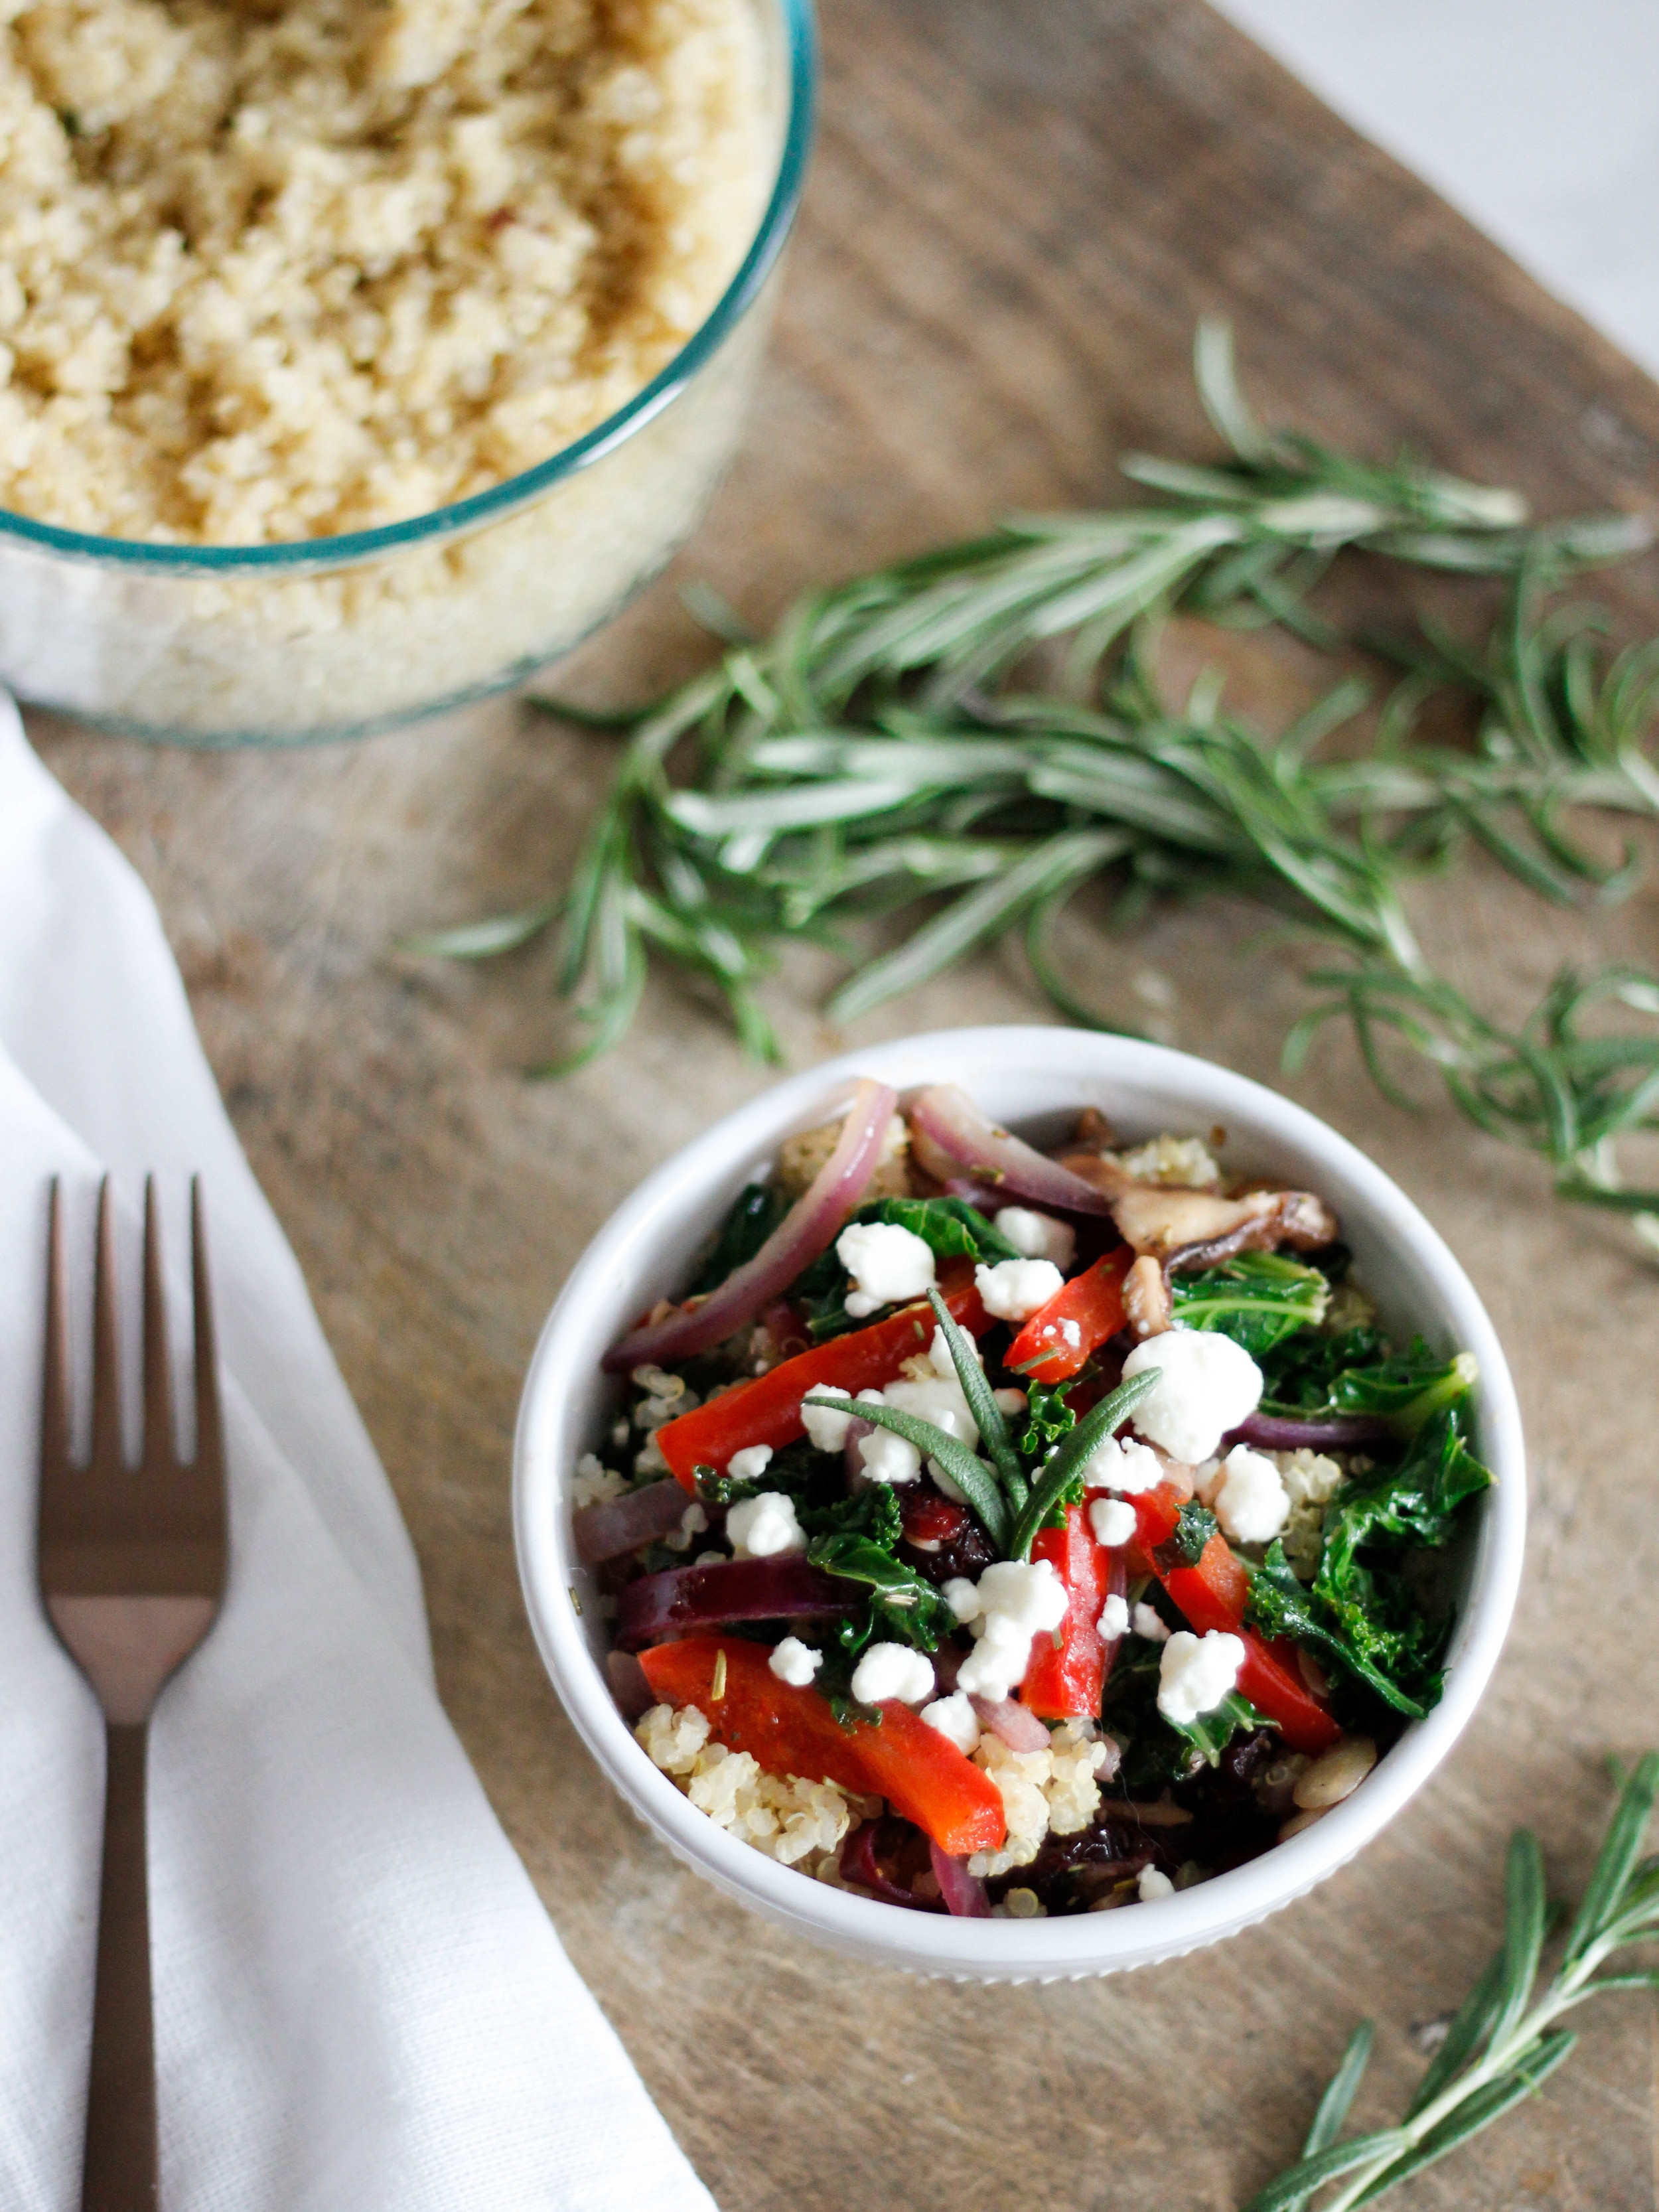 Rosemary & Red Pepper Quinoa Bowl | Jennifer Diaz